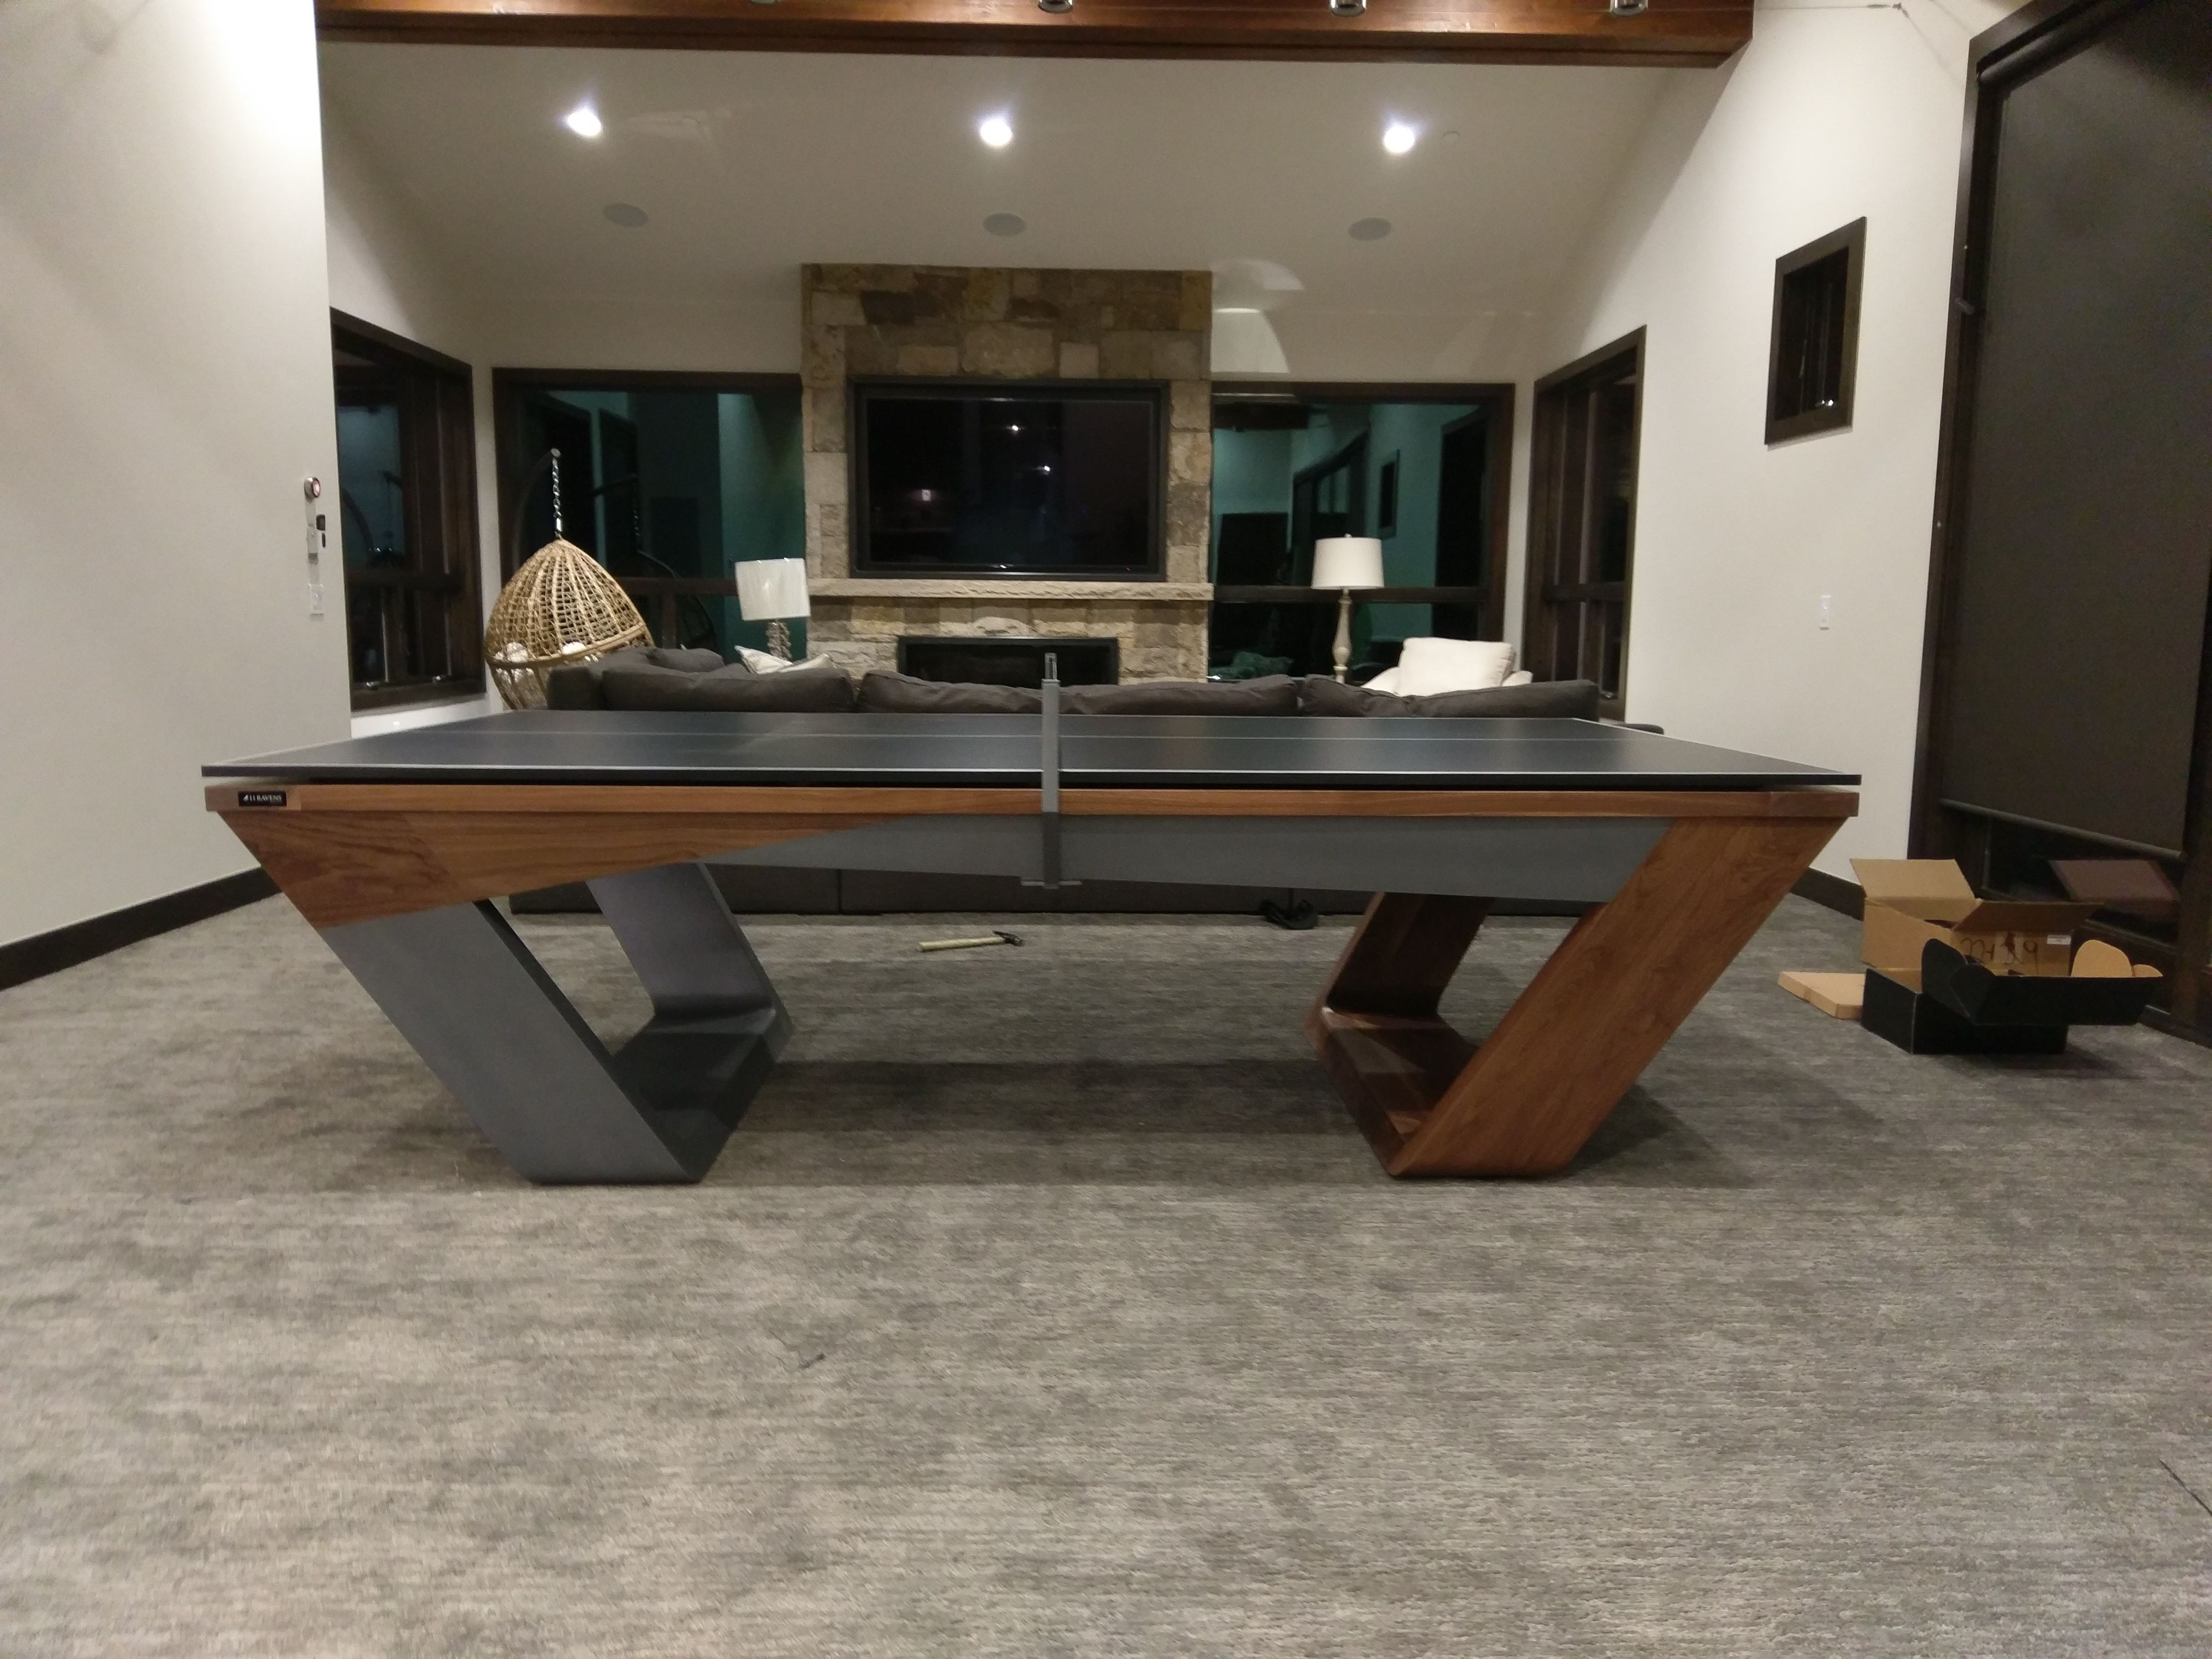 Fluid Lines And Visual Contours Create A Remarkably Uncomplicated Spirit And Aerodynamism In The Avettore A Magnum Modern Pool Table Modern Pools Table Design